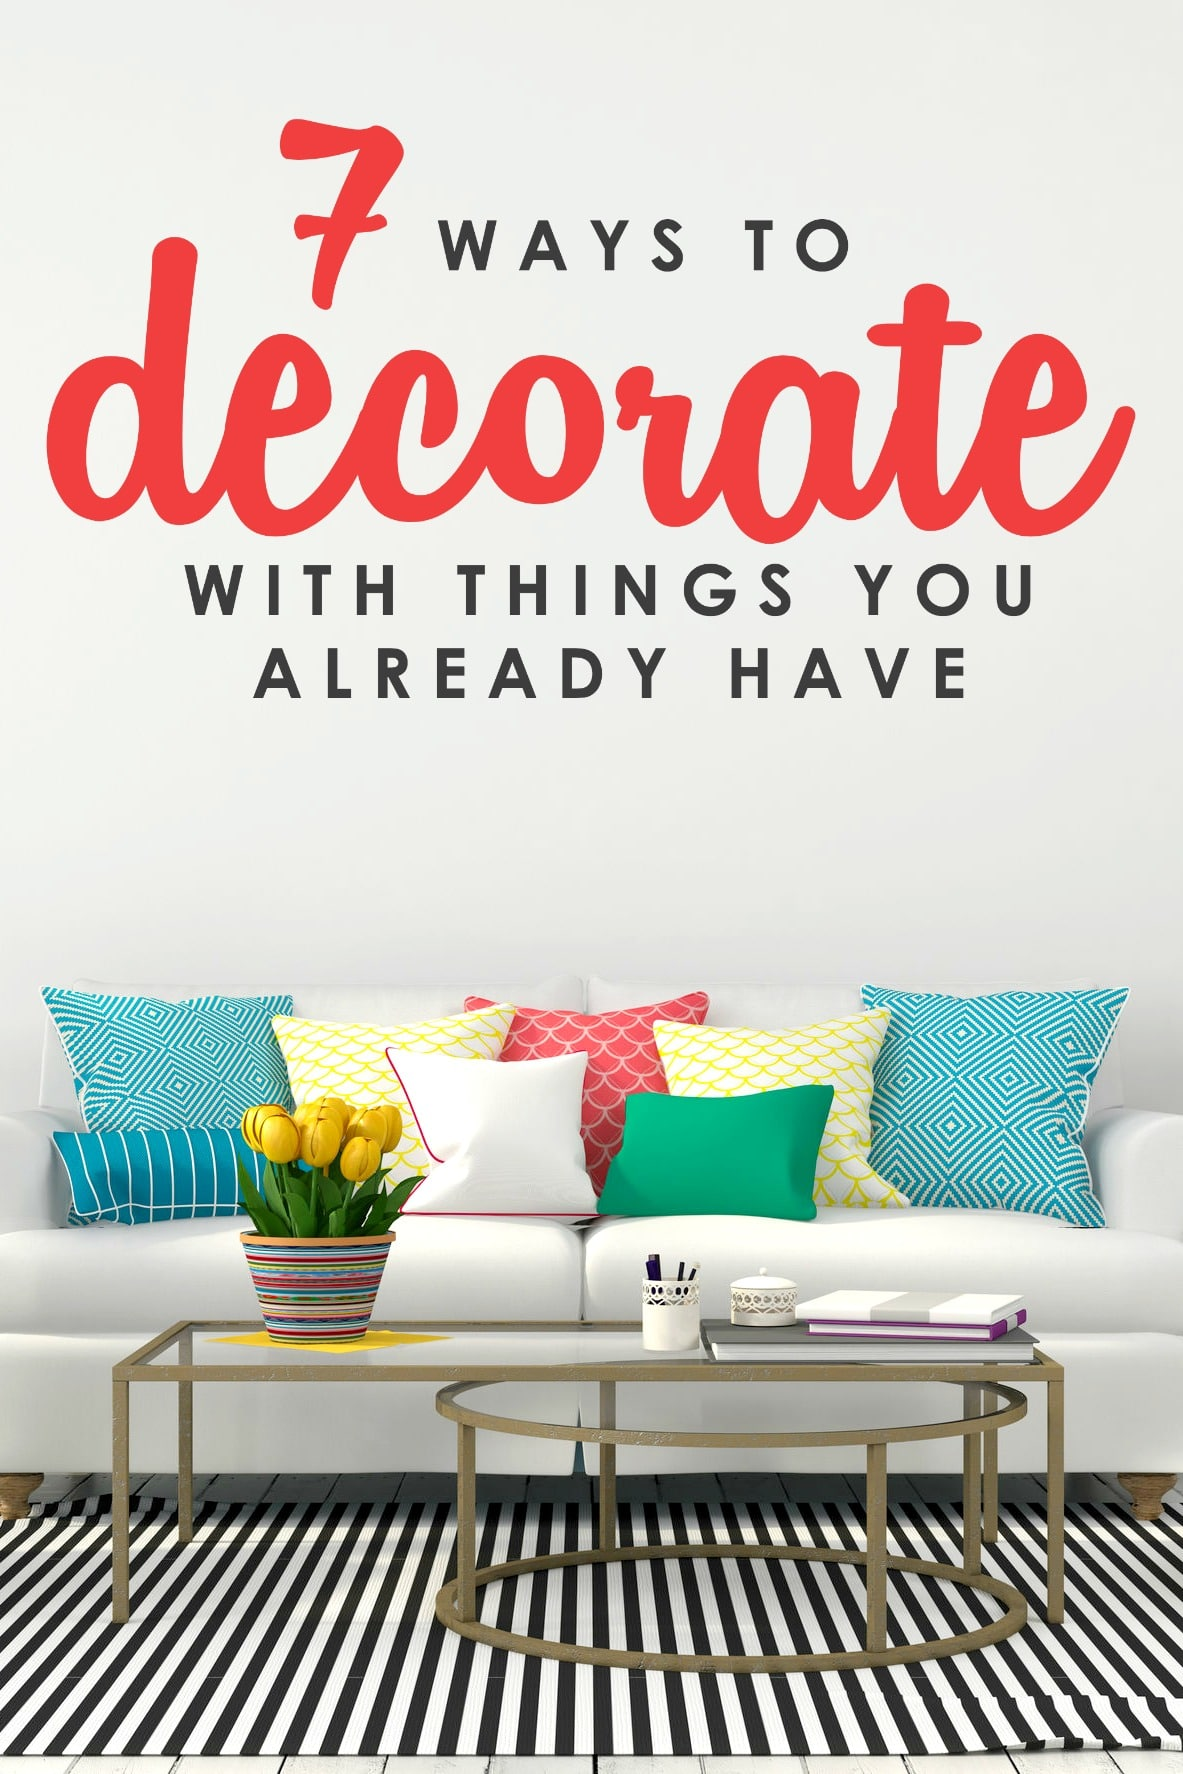 7 Ways to Decorate with Things You Already Have | Easy Home Decor